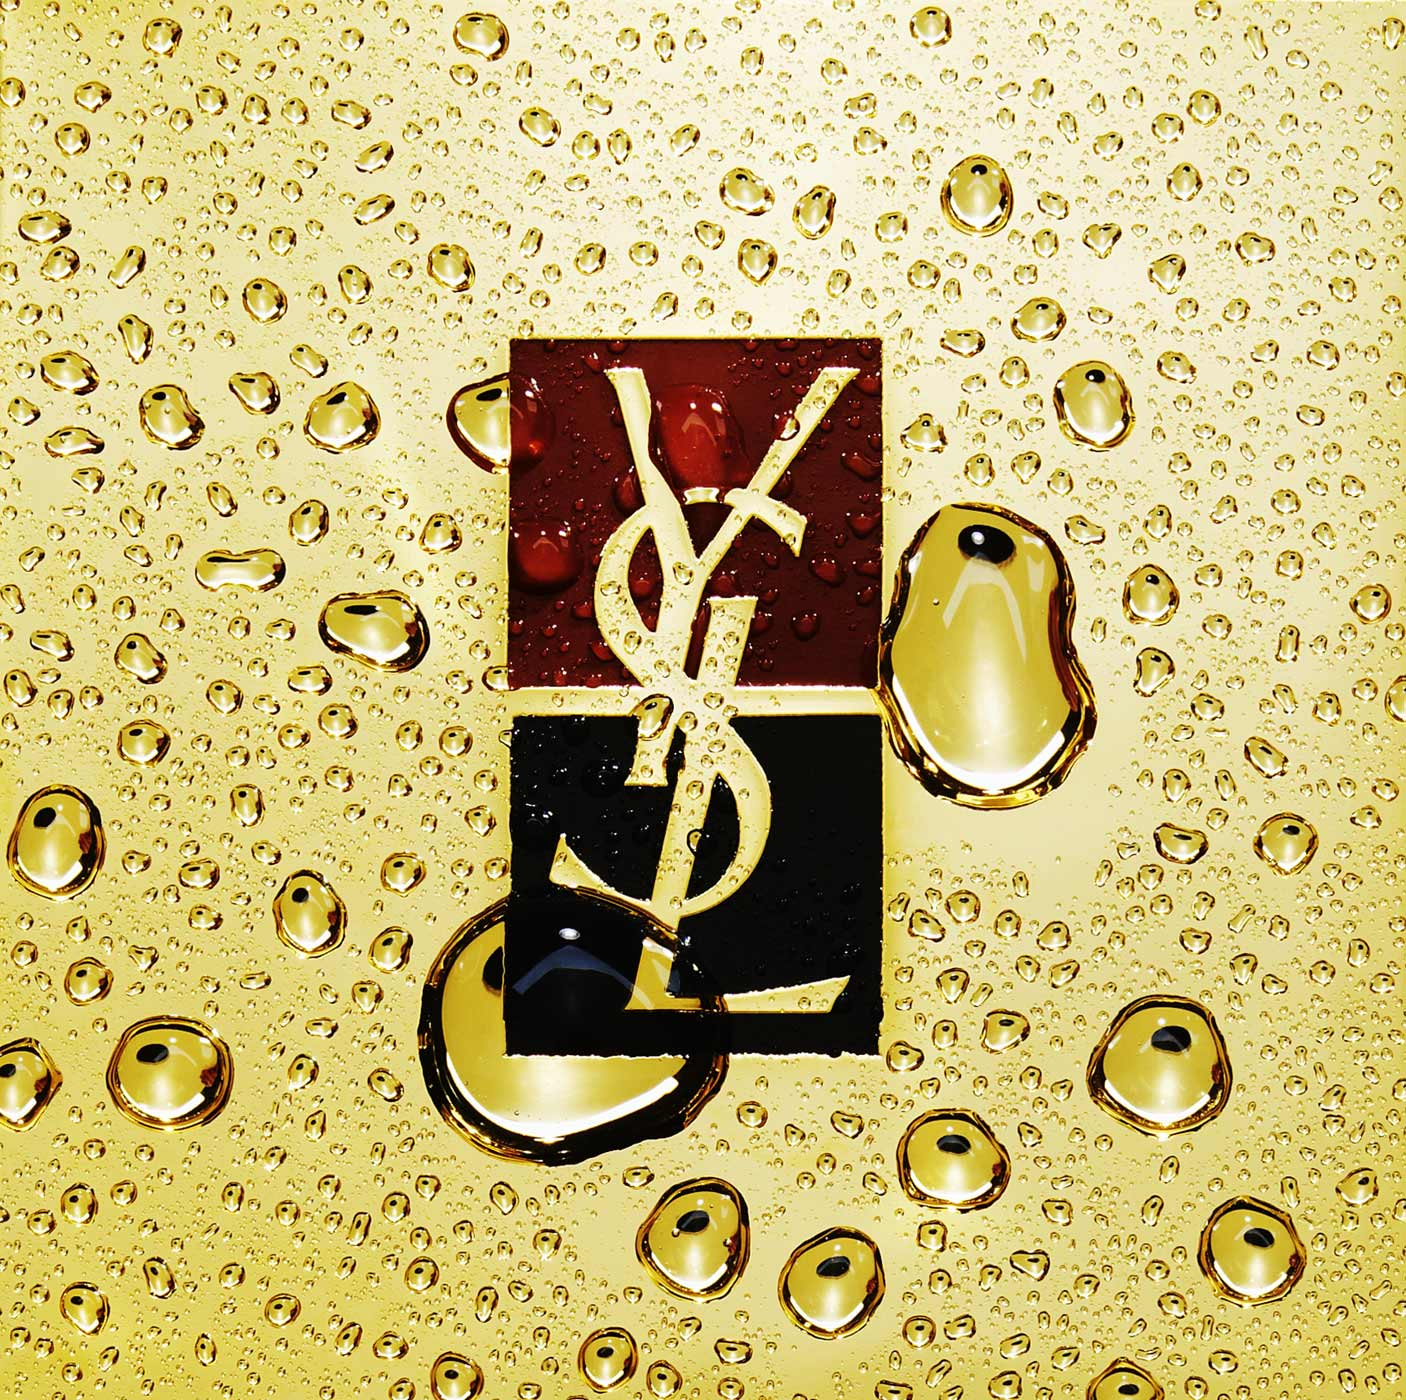 YSL_WaterPackage_APF.jpg